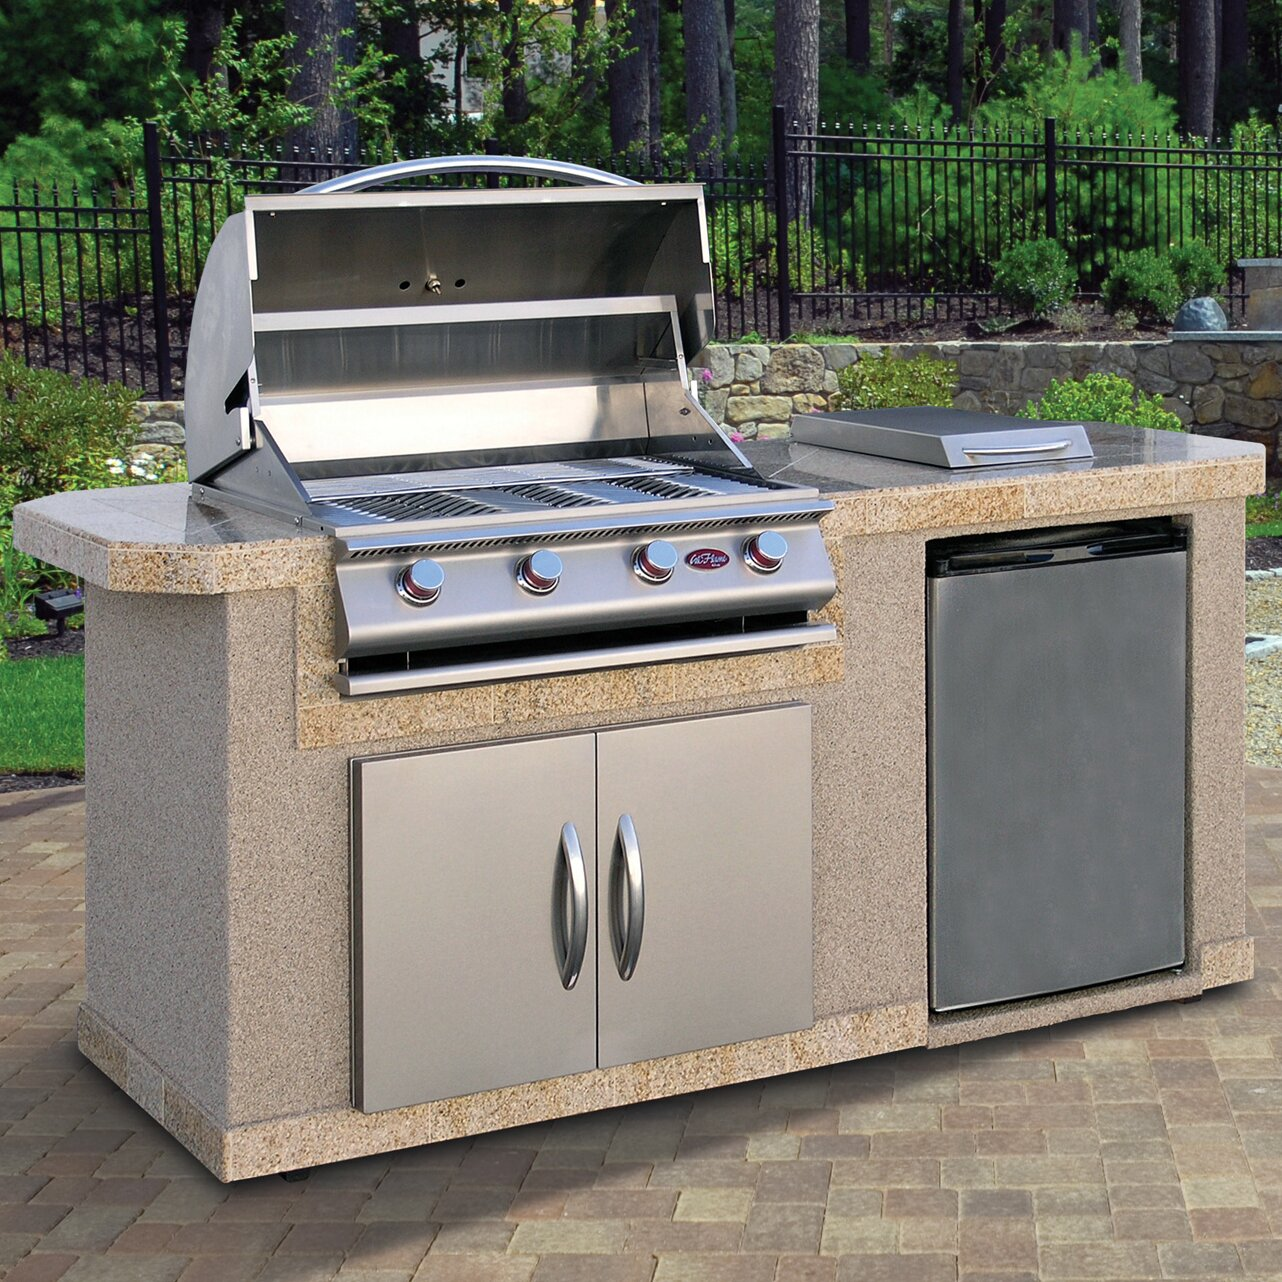 calflame outdoor kitchen islands 4 burner built in propane gas grill with side shelves reviews. Black Bedroom Furniture Sets. Home Design Ideas